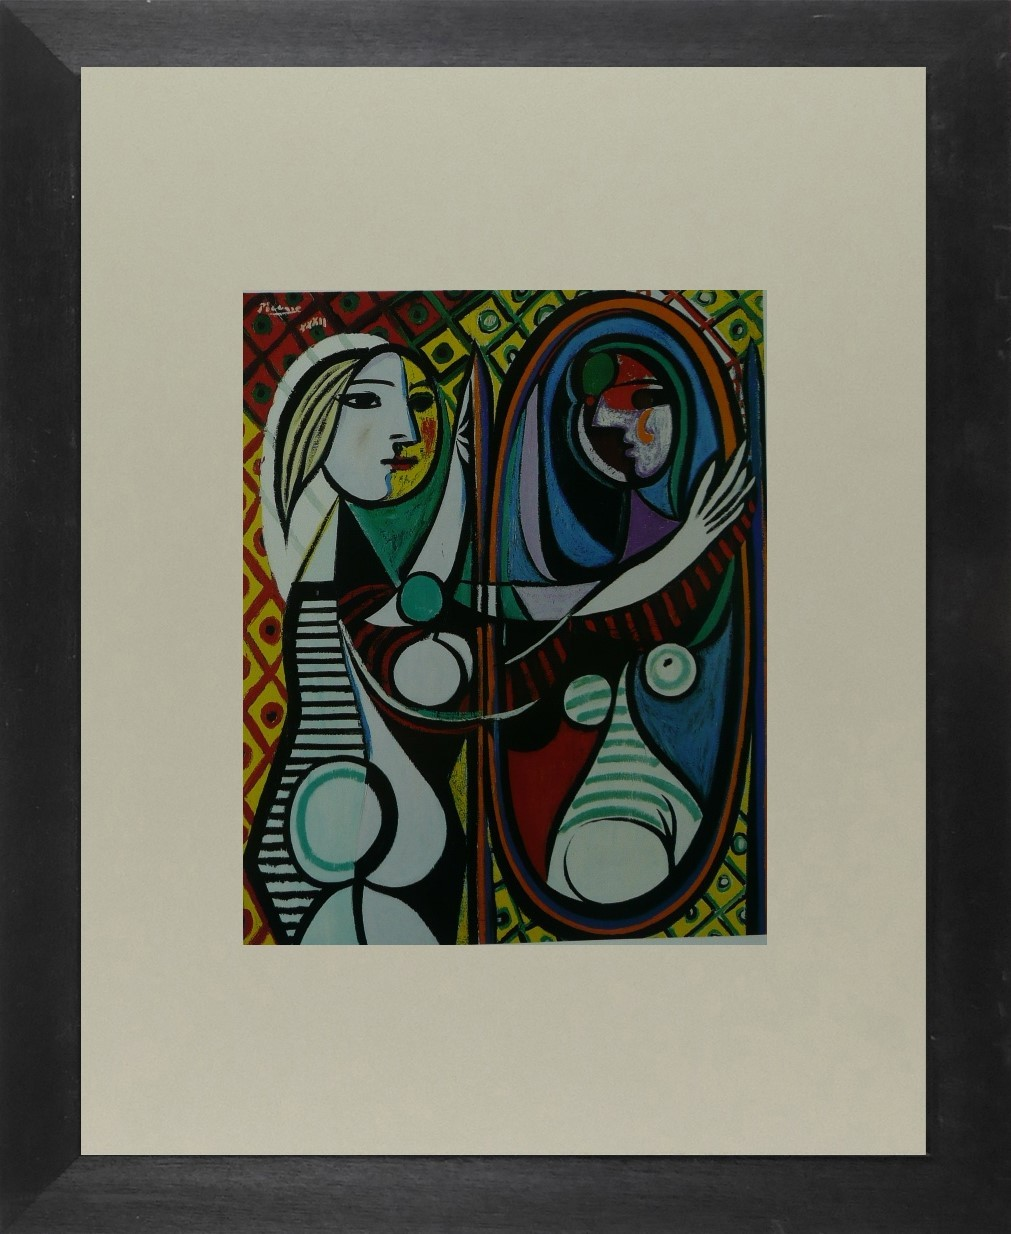 Girl before a mirror - Picasso - Framed Picture 11 x 14